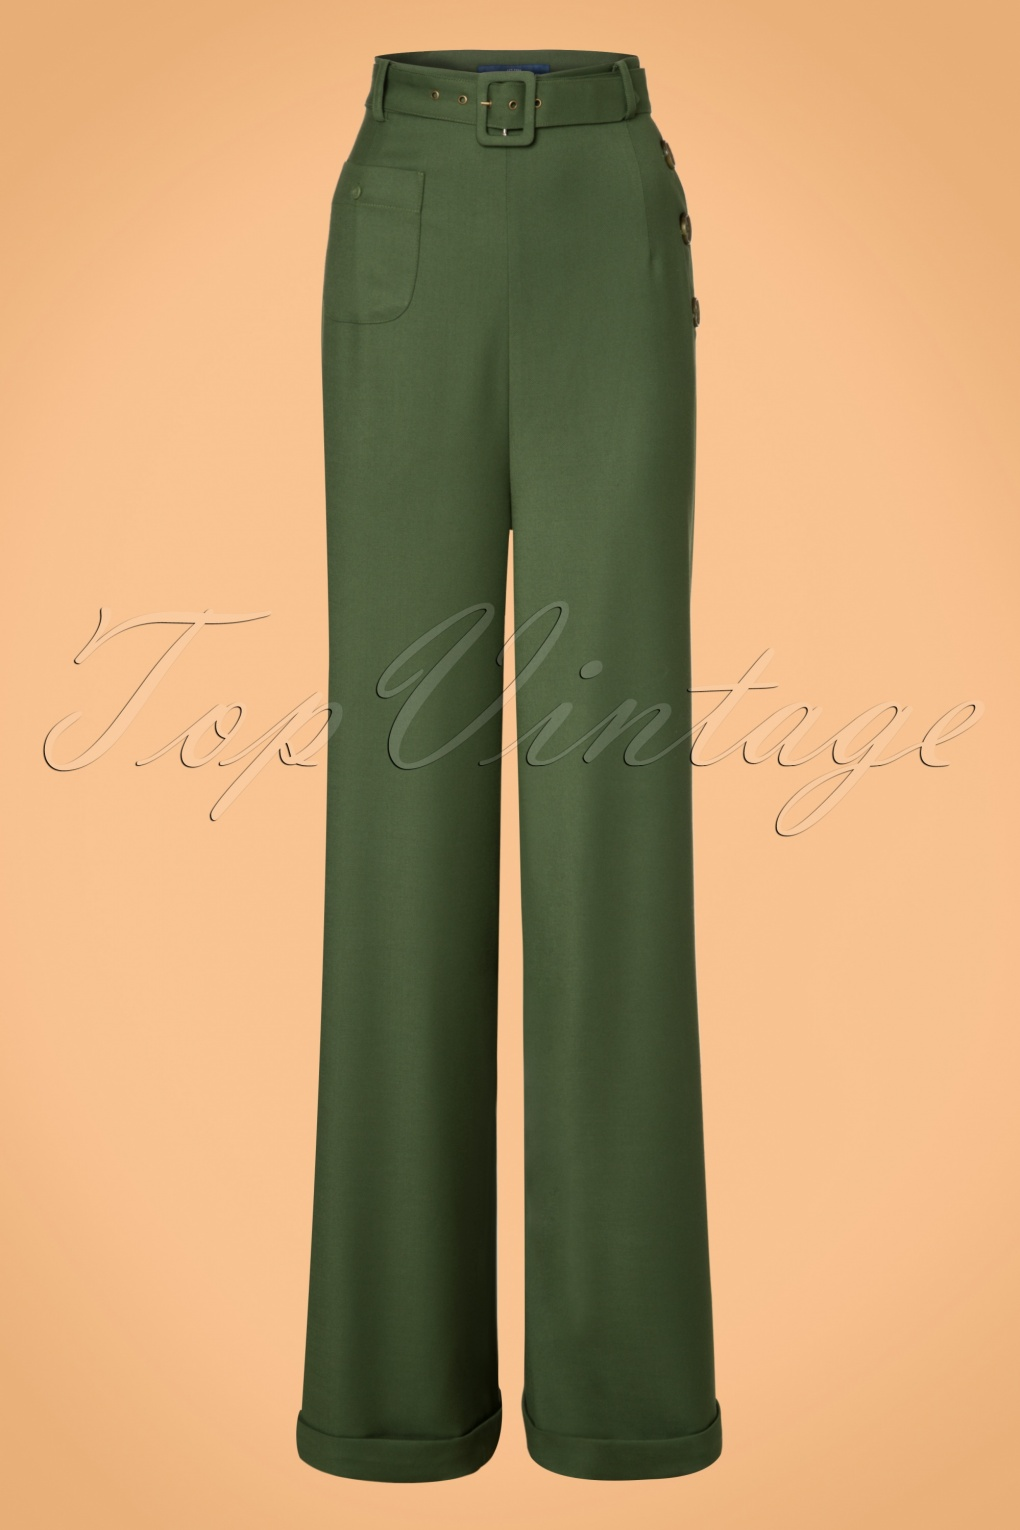 Vintage High Waisted Trousers, Sailor Pants, Jeans 40s Gertrude Trousers in Green £67.39 AT vintagedancer.com